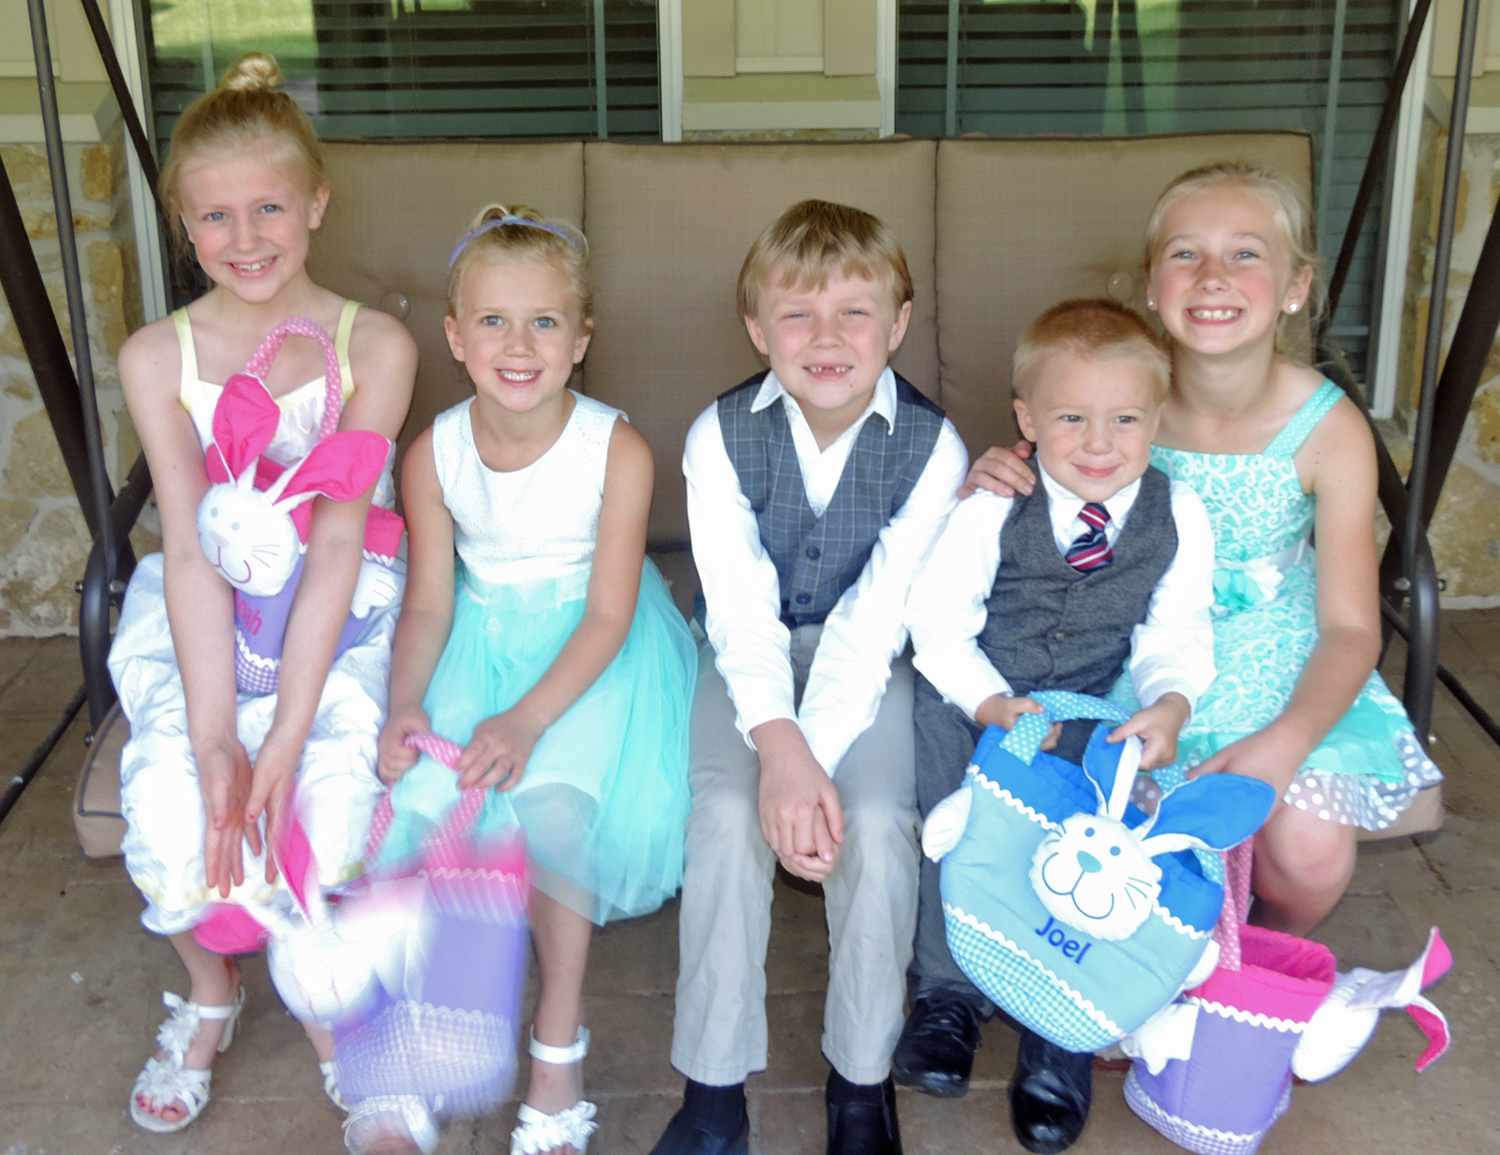 Cousin Easter